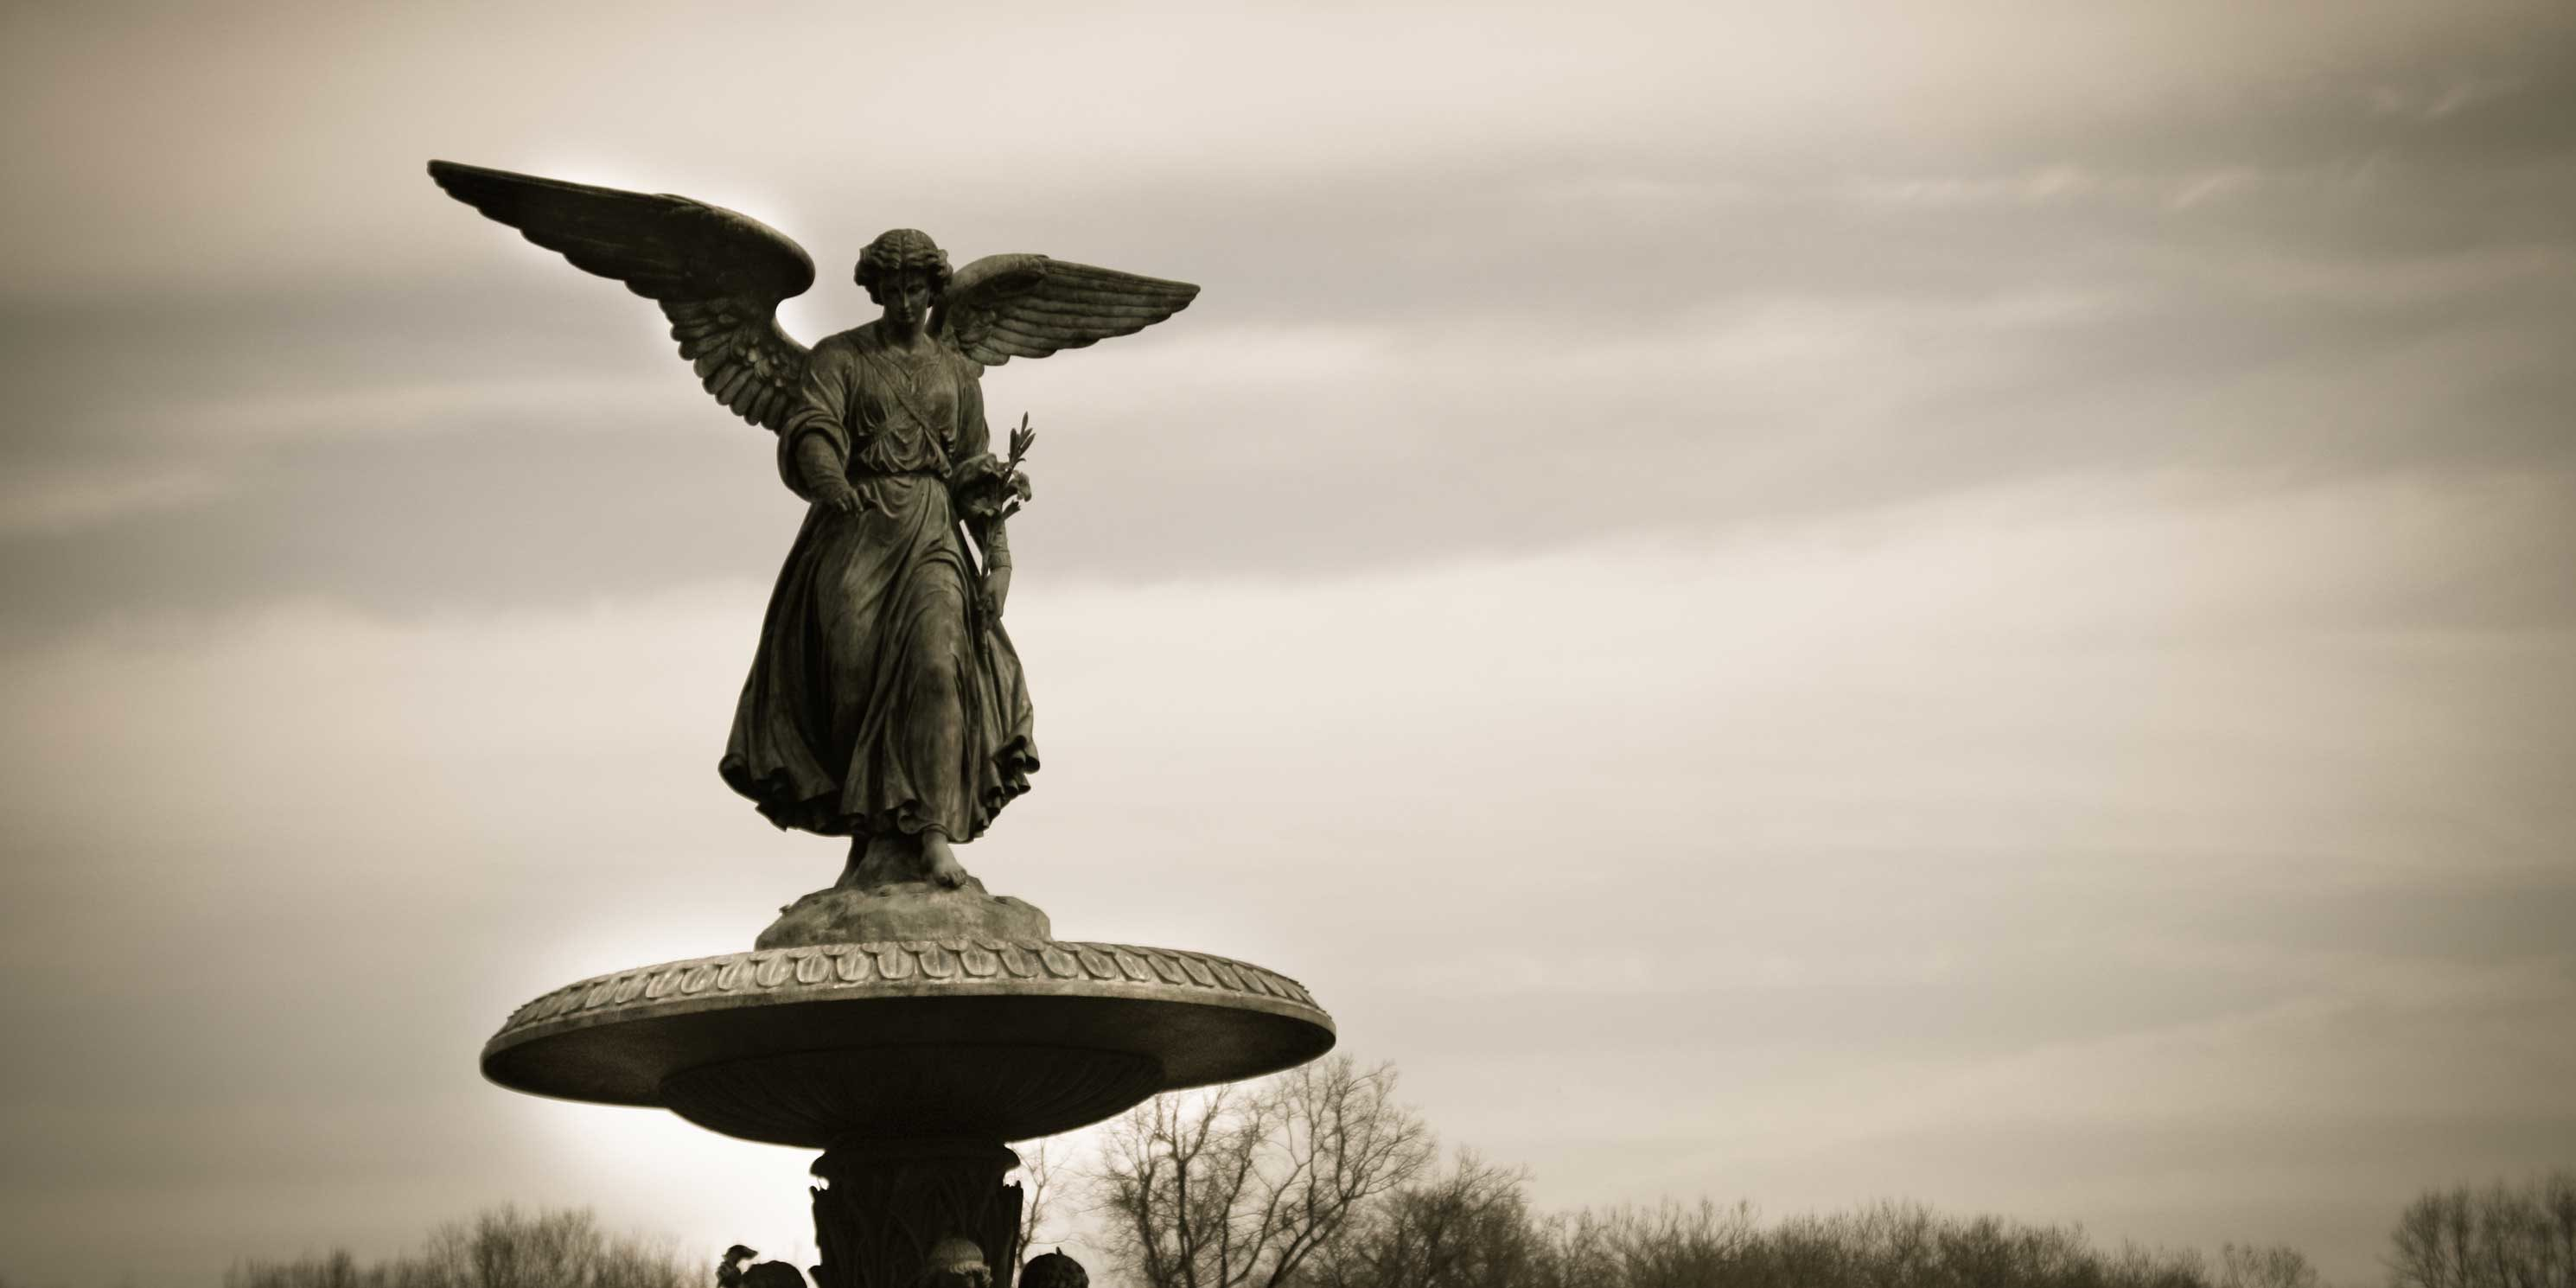 angel atop Bethesda Fountain in Central Park